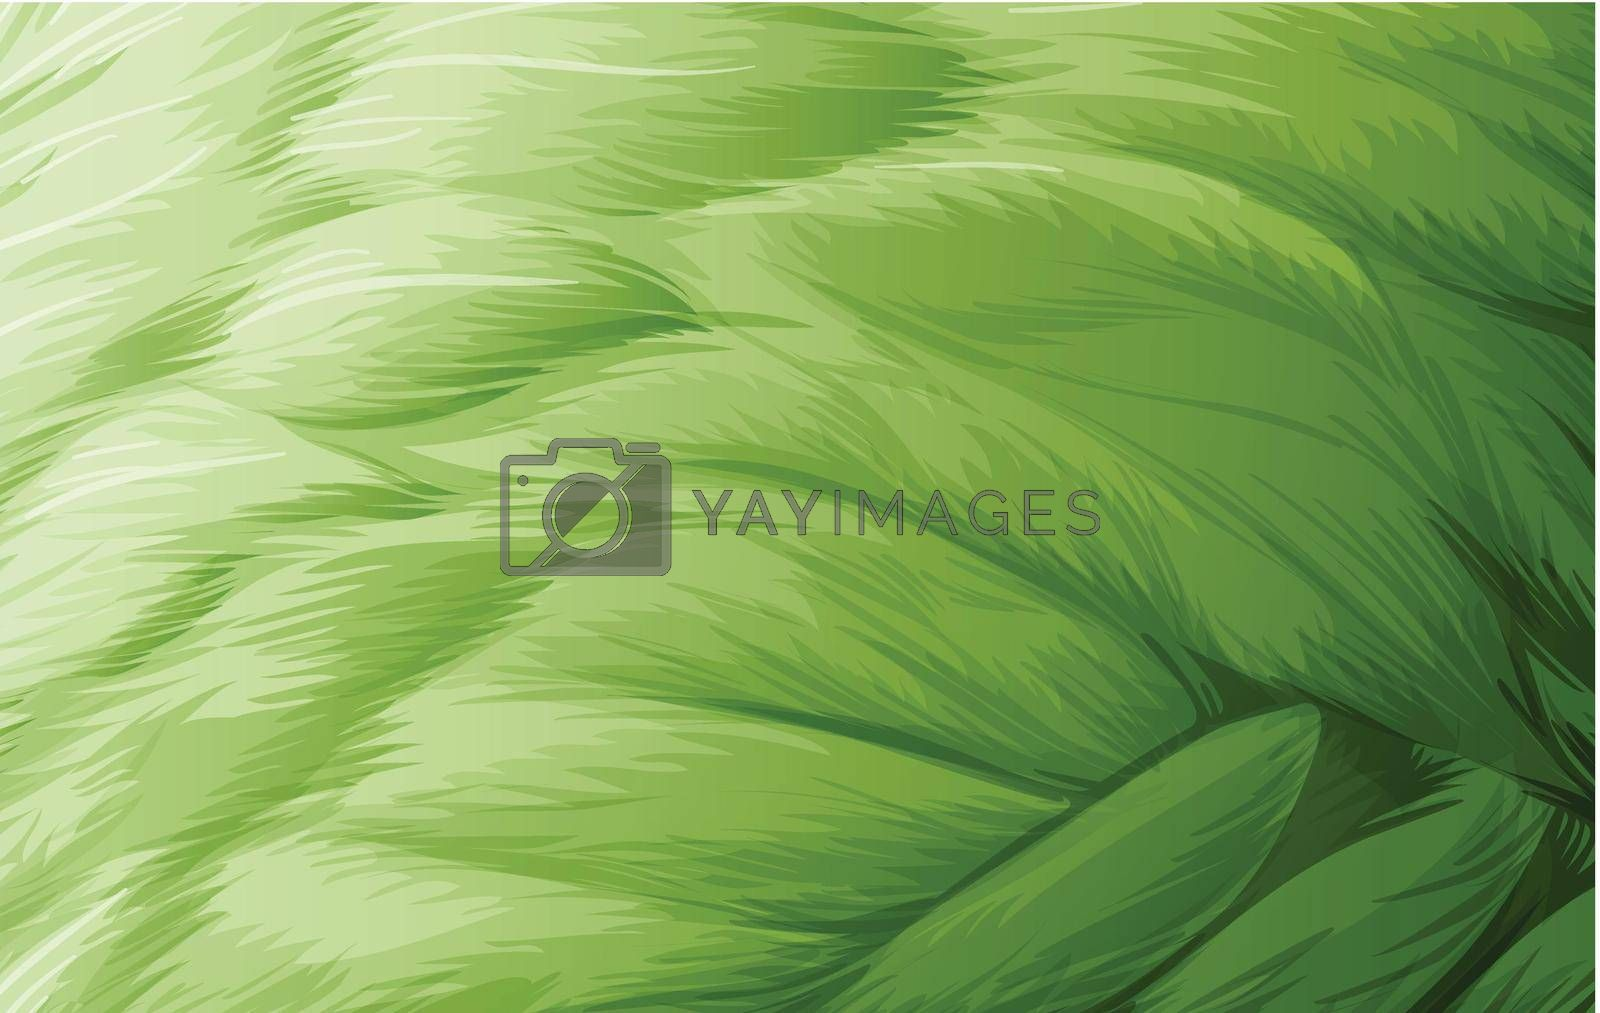 Royalty free image of A feather texture by iimages